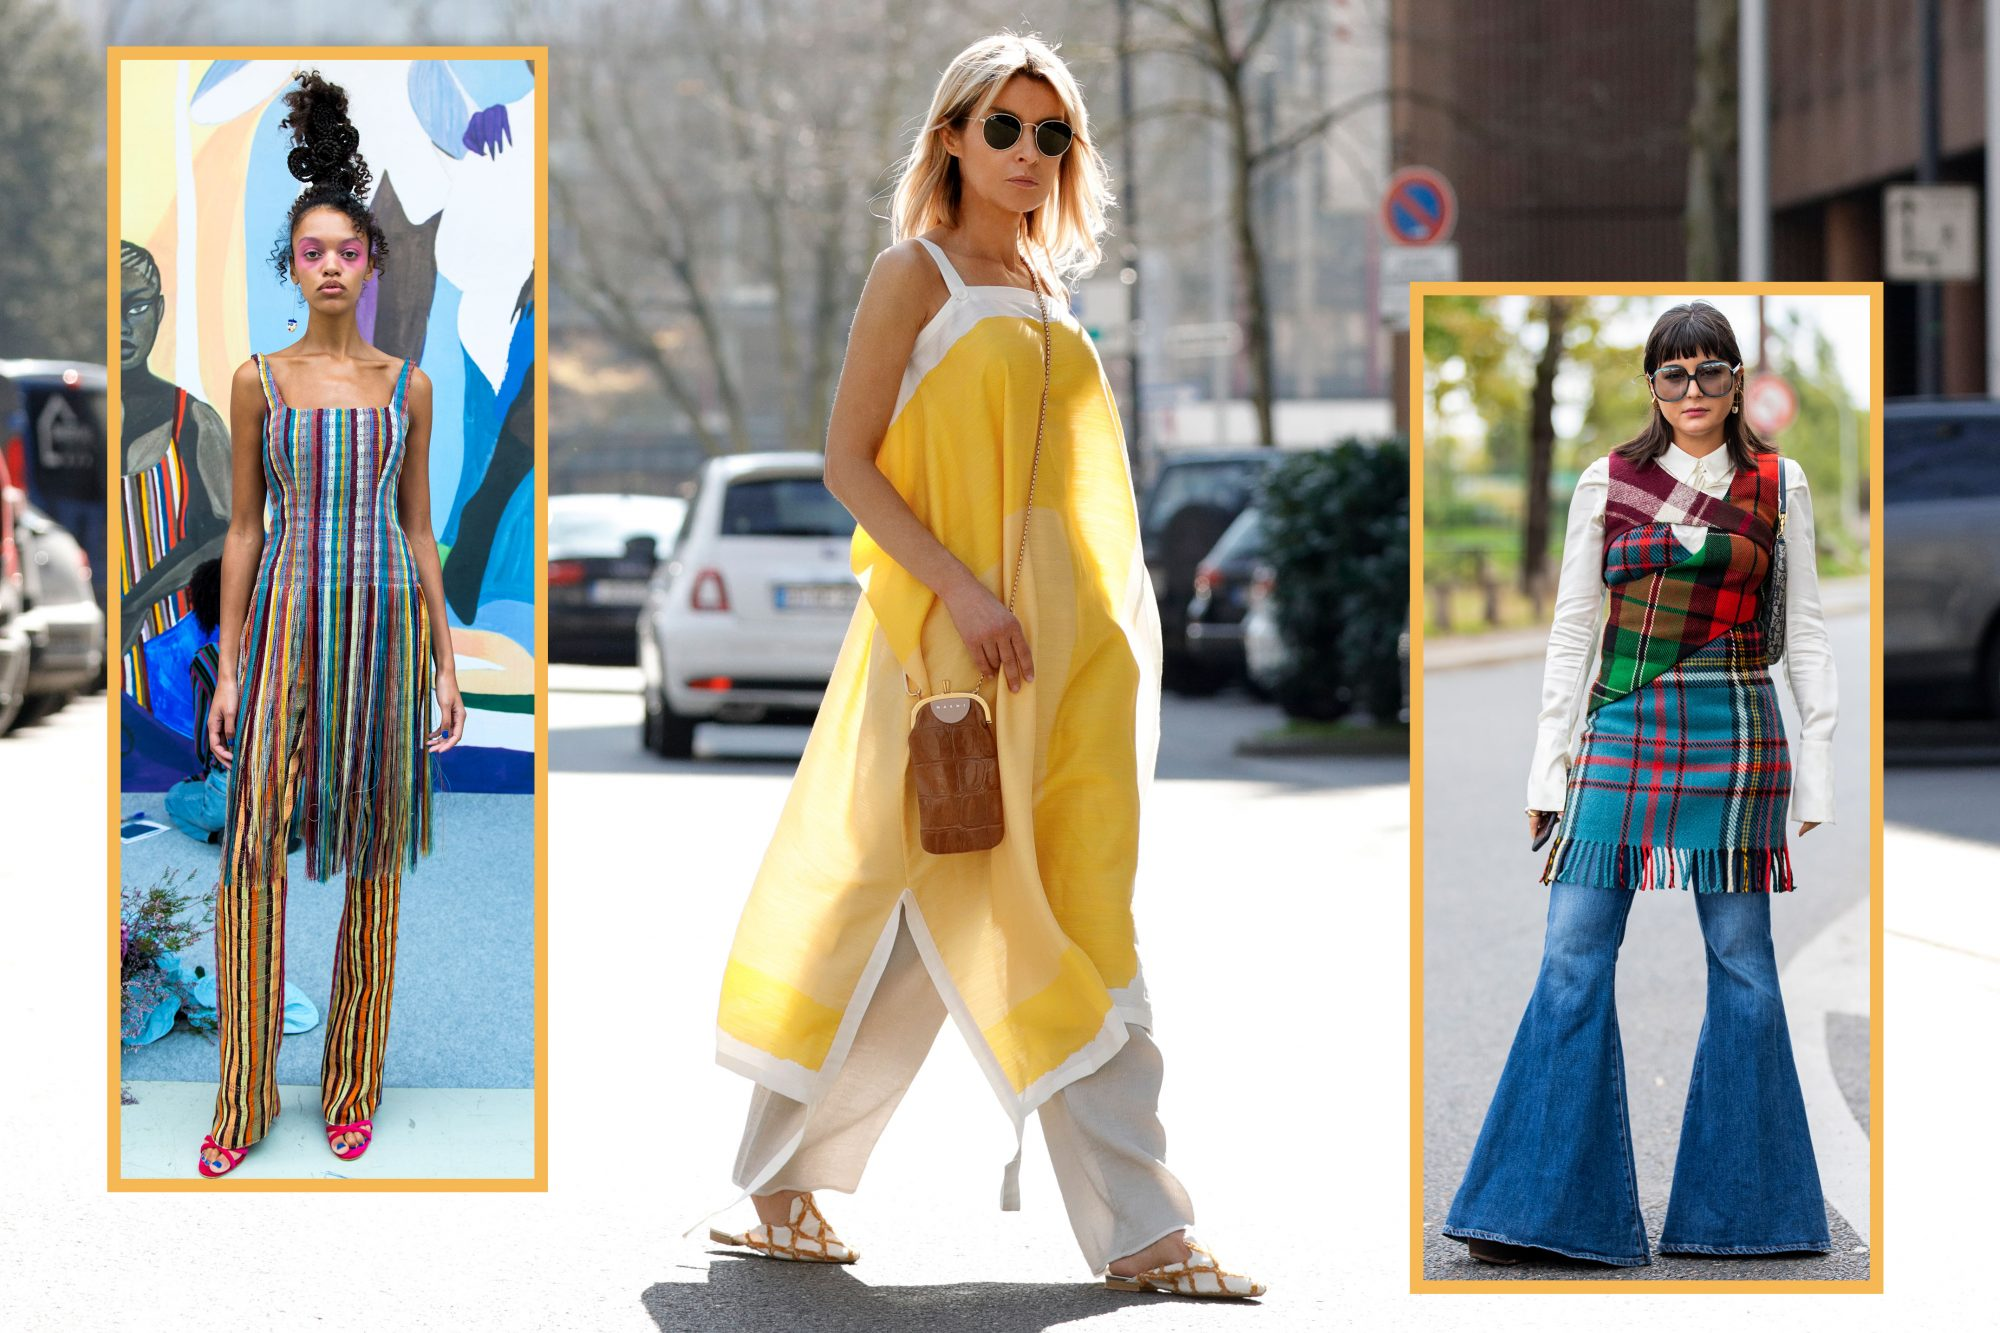 The Dress Over Pants Trend Is Officially Happening